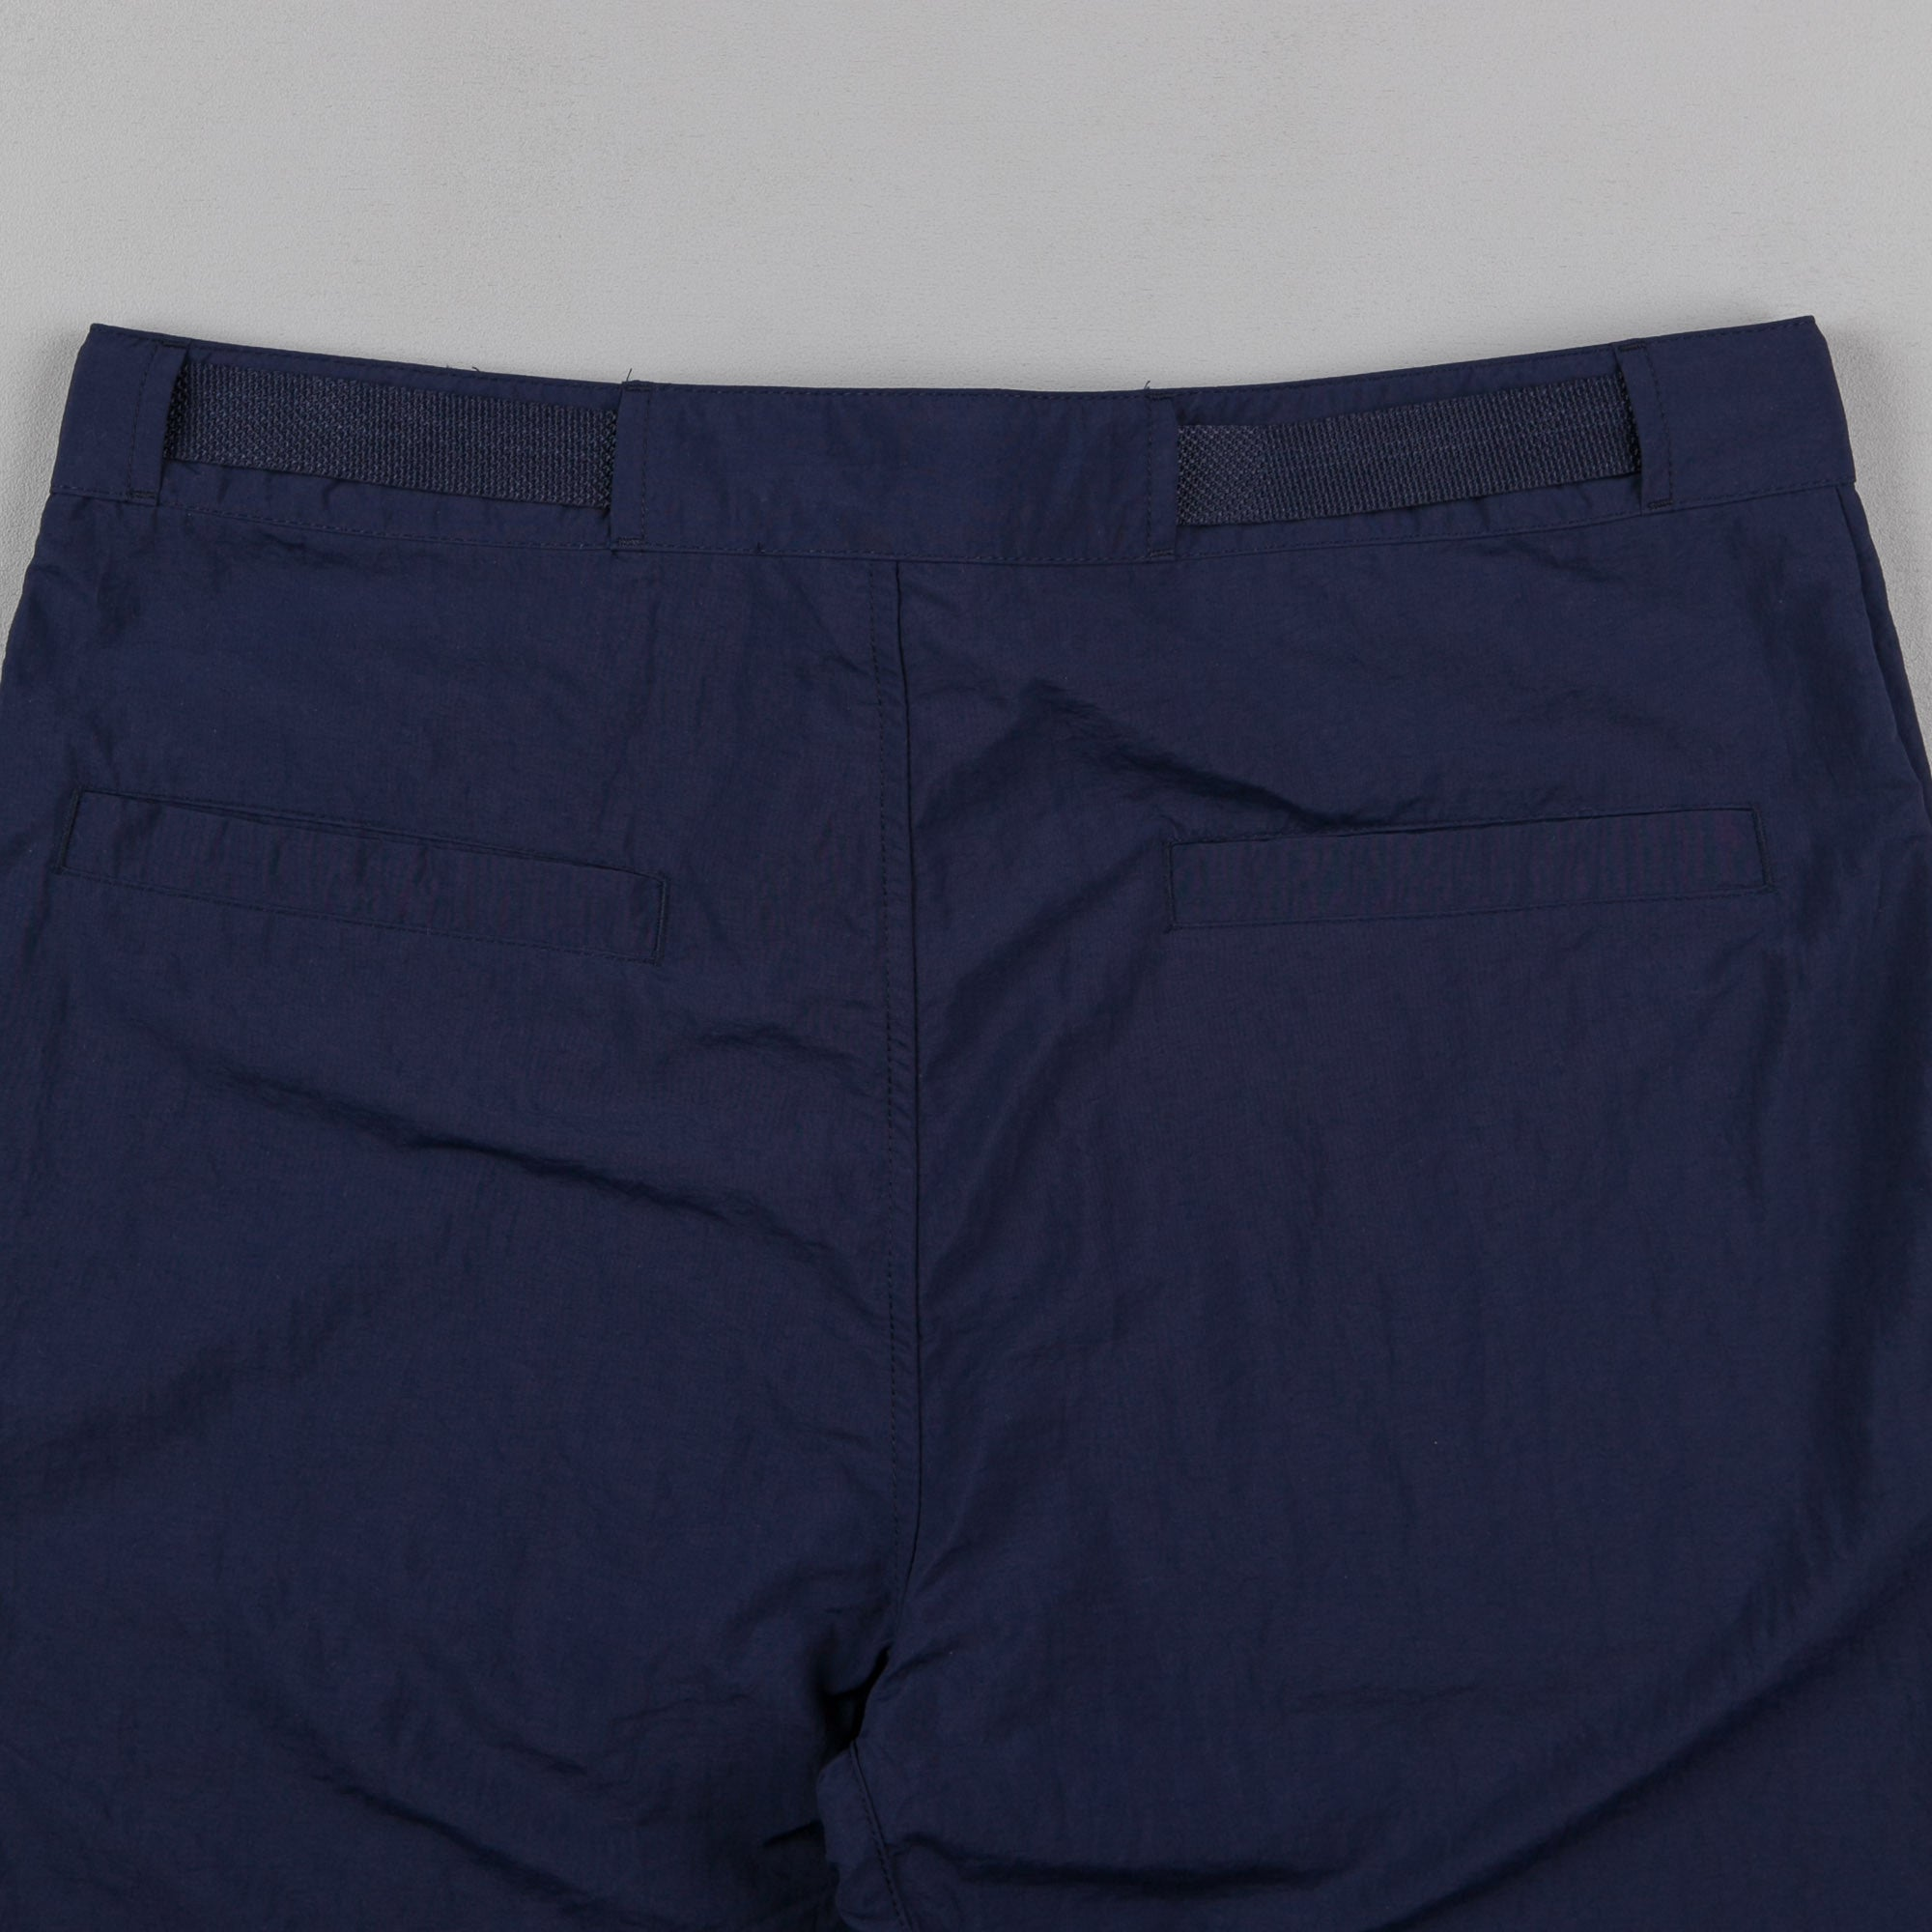 Nike SB x 917 Everett Country Club Everett Shorts - Obsidian / Gorge Green